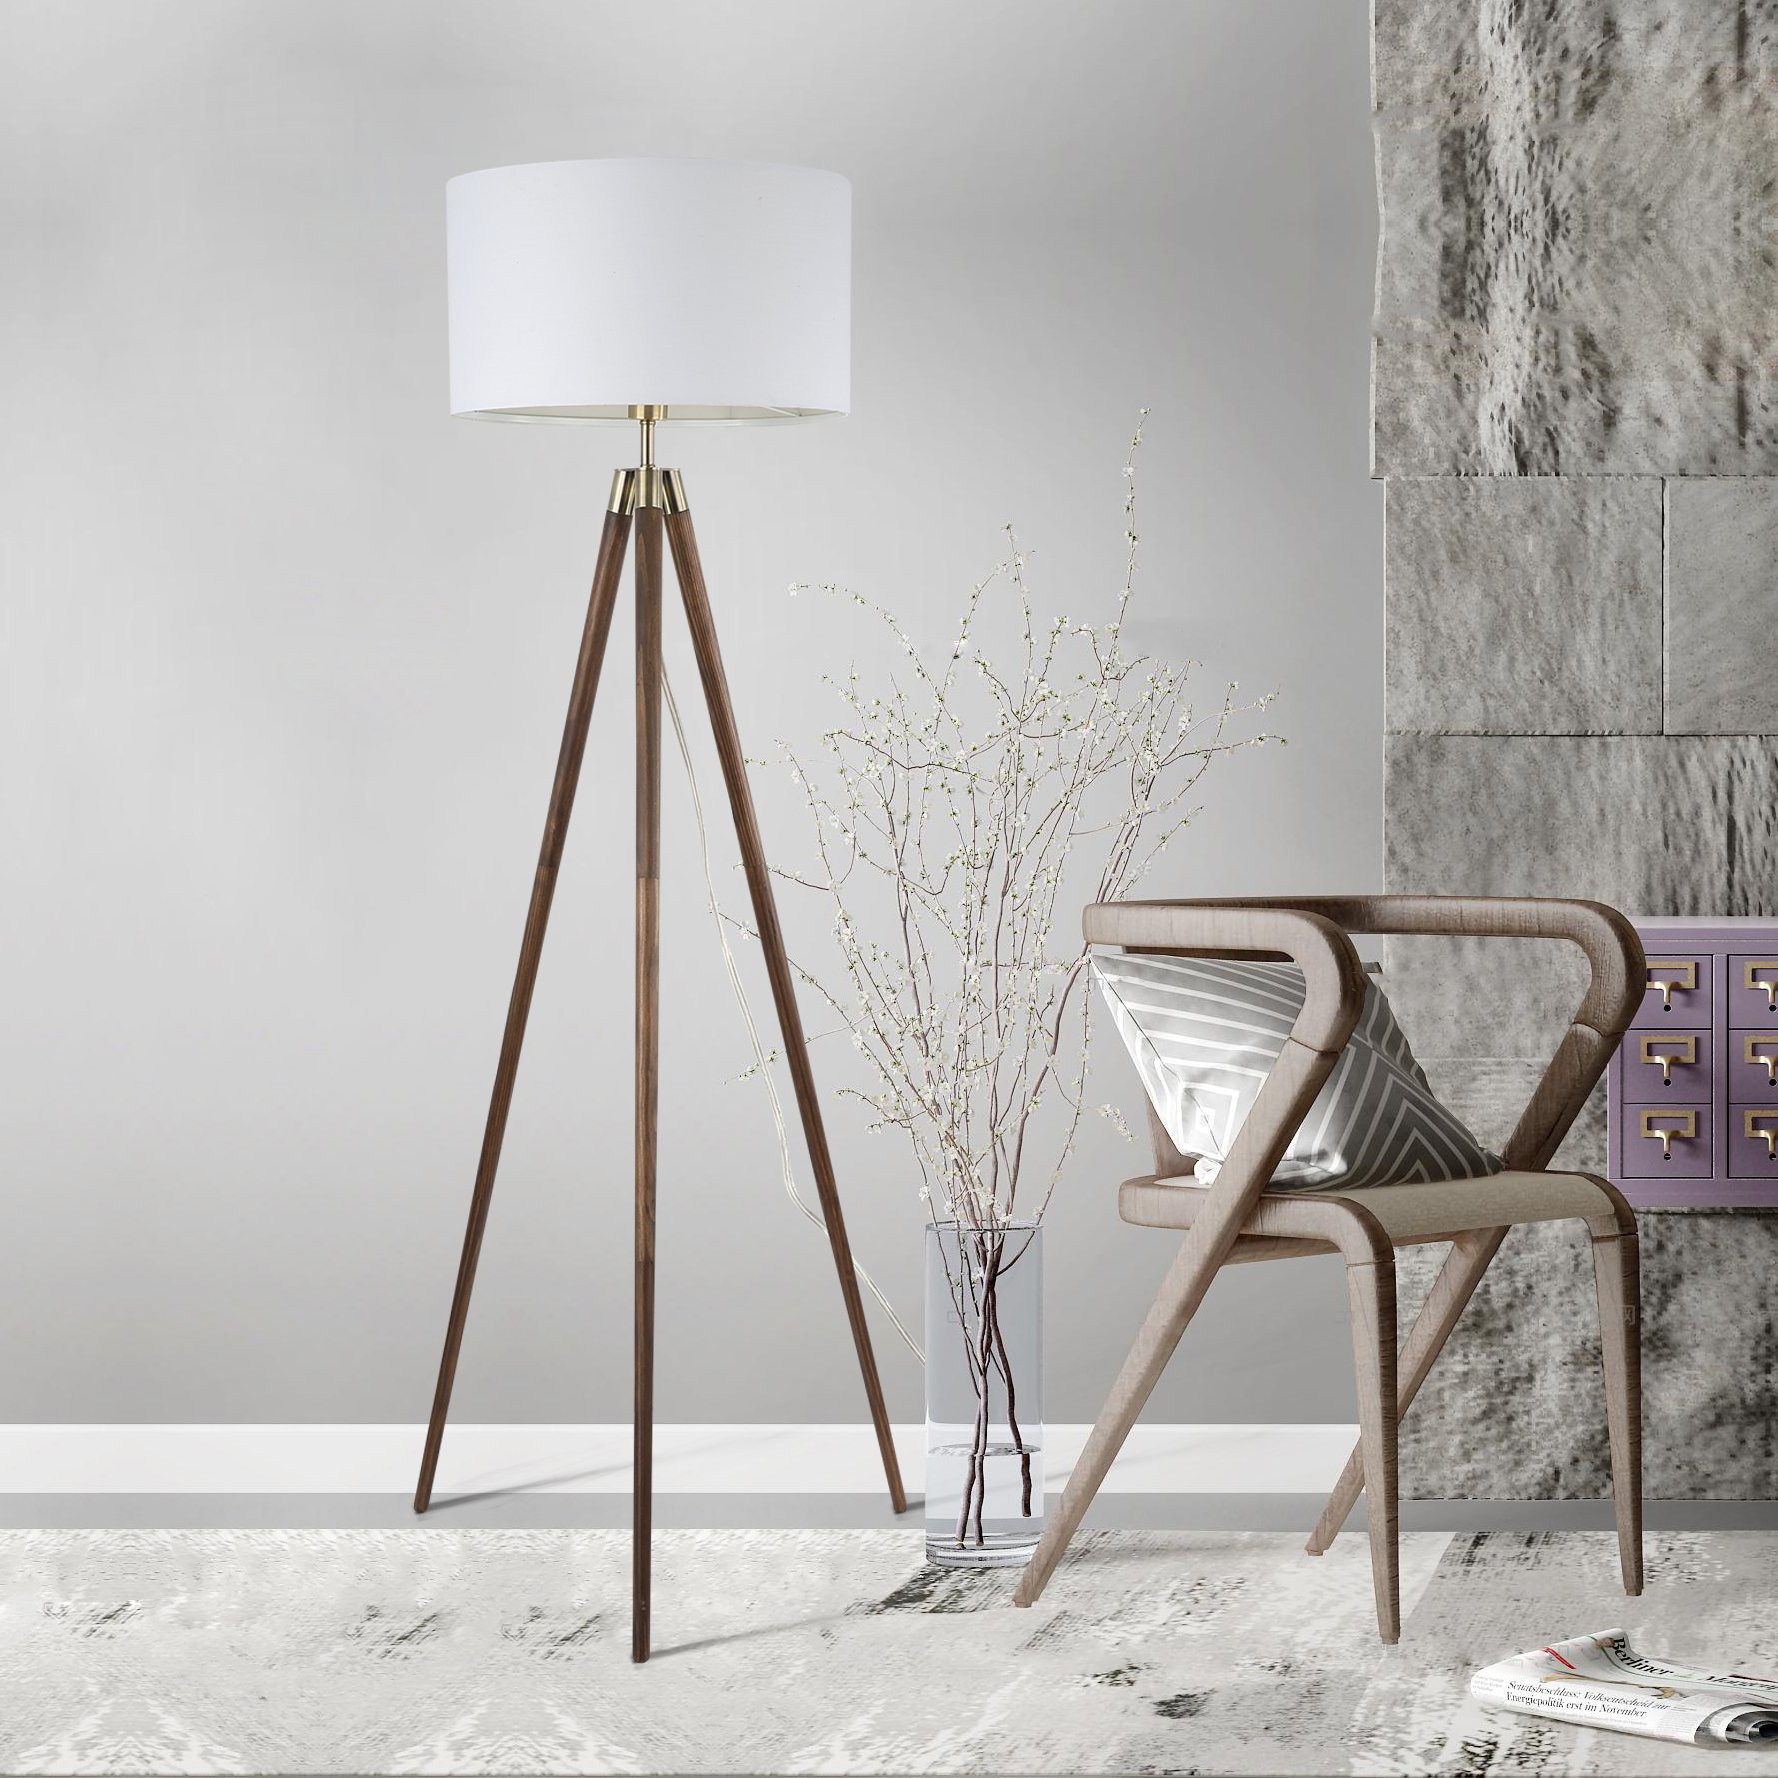 Light Society Celeste Tripod Floor Lamp, Walnut Wood Legs with Antique Brass Finish and White Fabric Shade, Mid Century Contemporary Modern Style (LS-F233-WAL) by Light Society (Image #6)